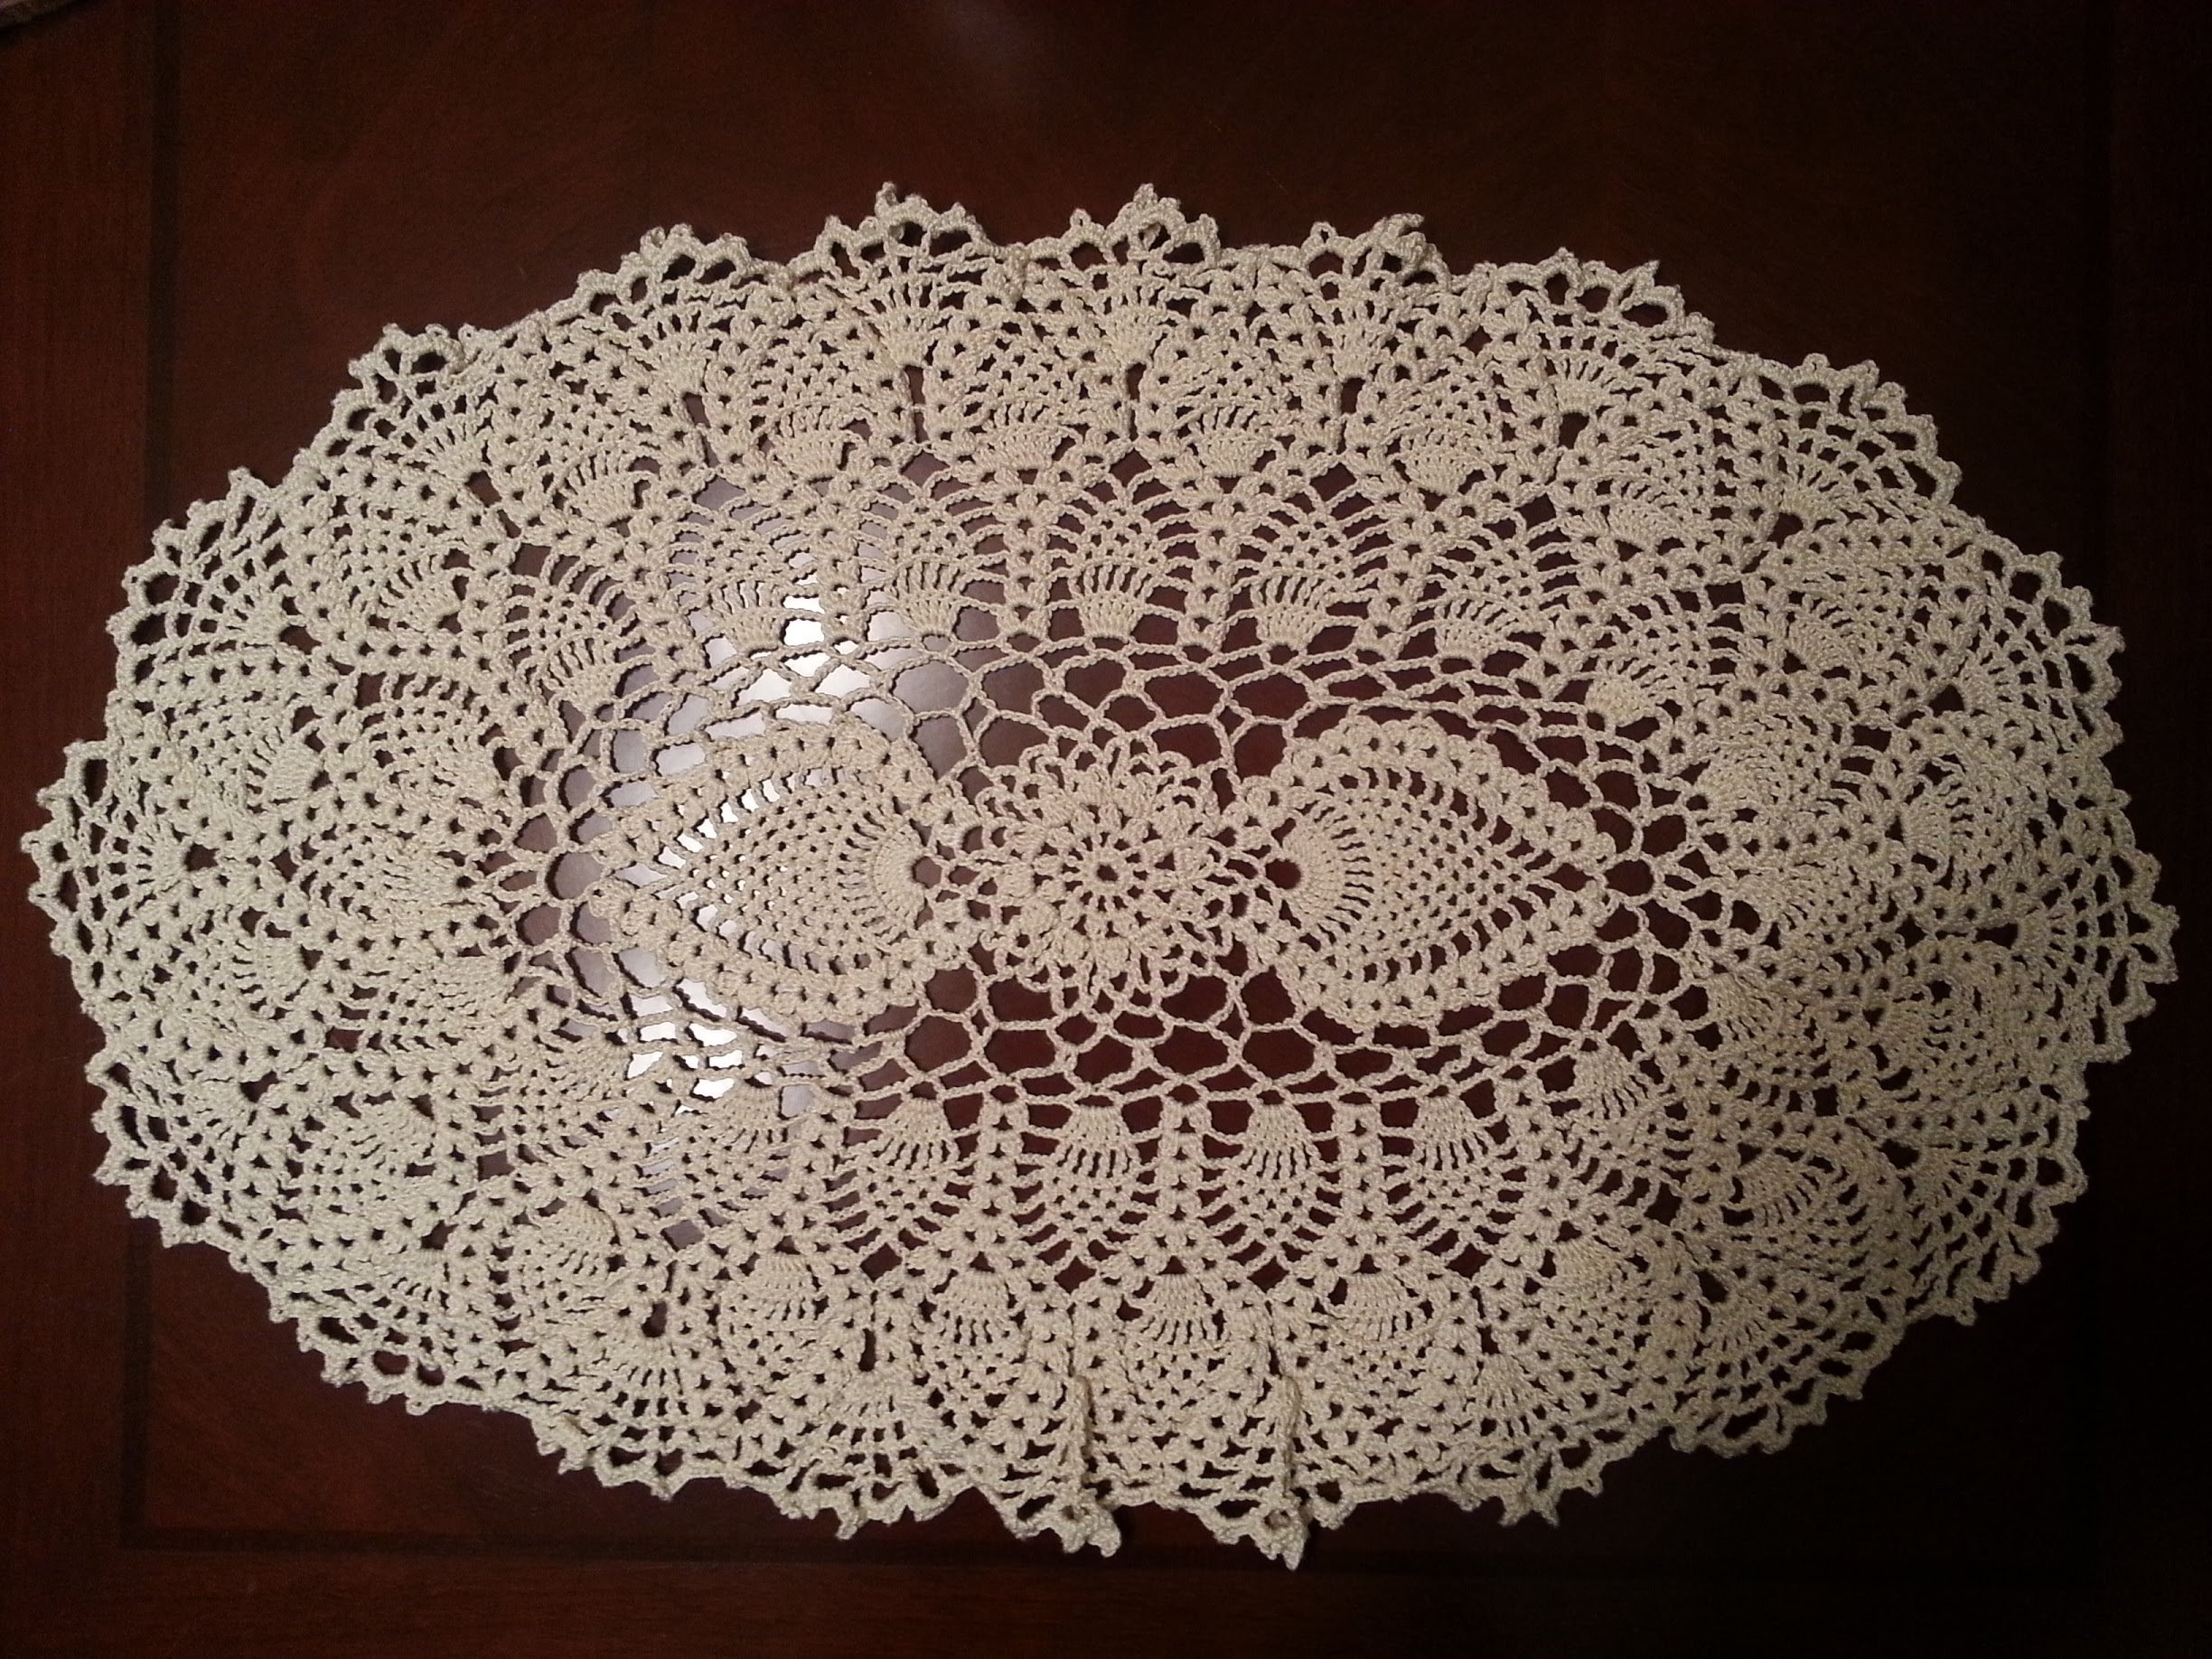 Crochet Tablecloth Pattern : 18 Easy Crochet Lace Tablecloth Patterns Guide Patterns